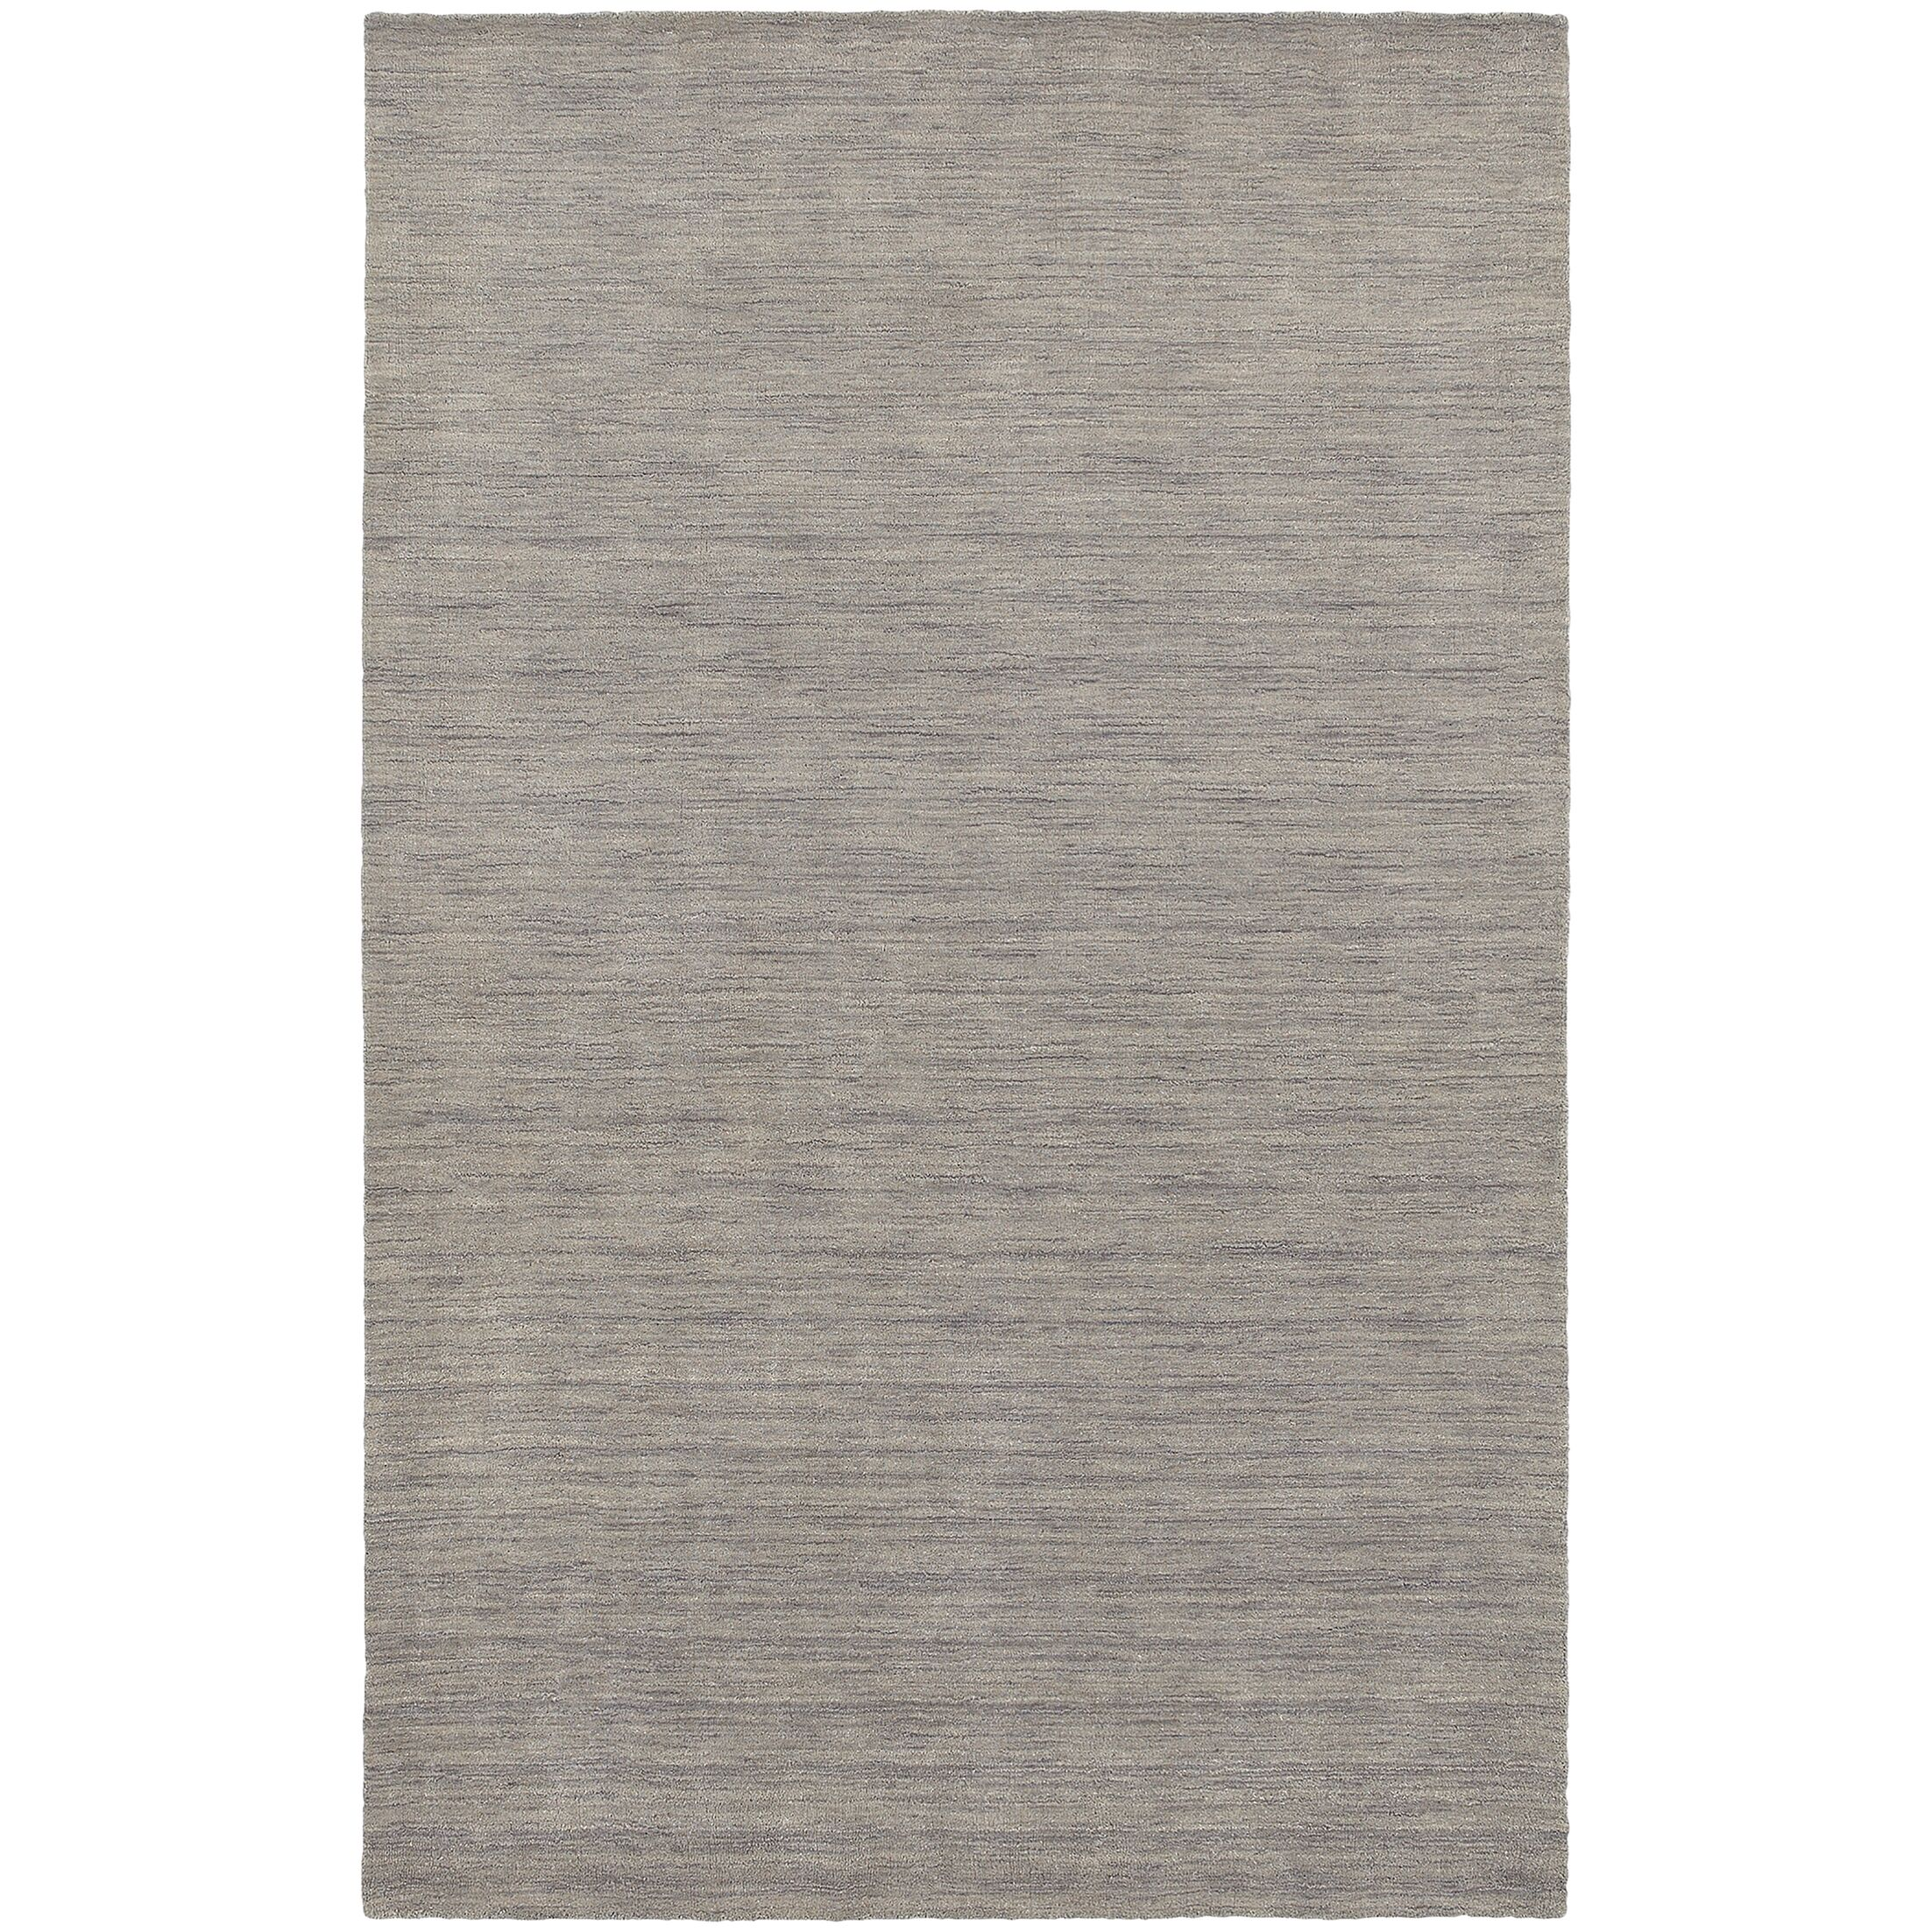 Barrientos Hand-Tufted Gray Area Rug Rug Size: Rectangle 5' x 8'